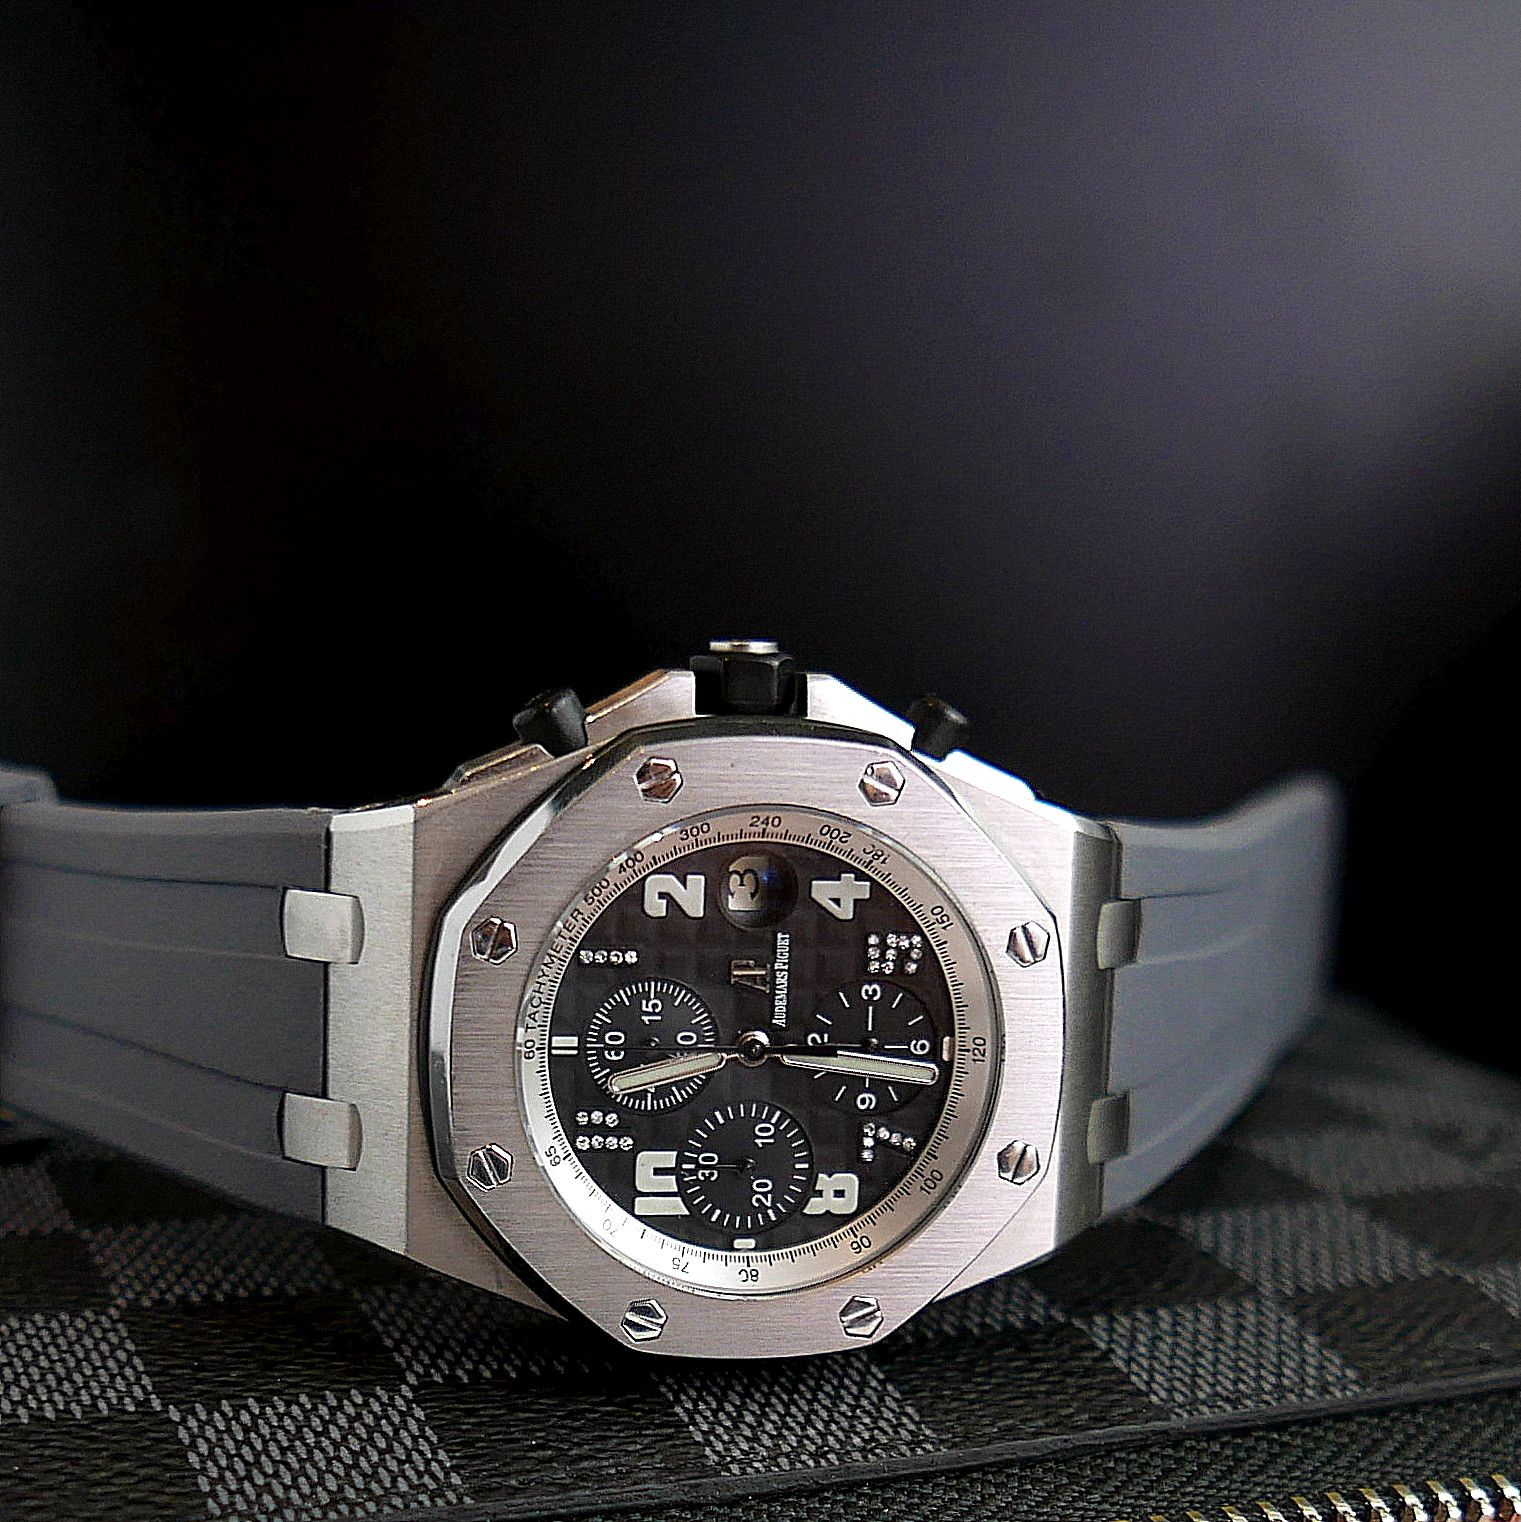 Audemars Piguet Grey Rubber Strap Audemars Piguet Piguet Luxury Watches For Men